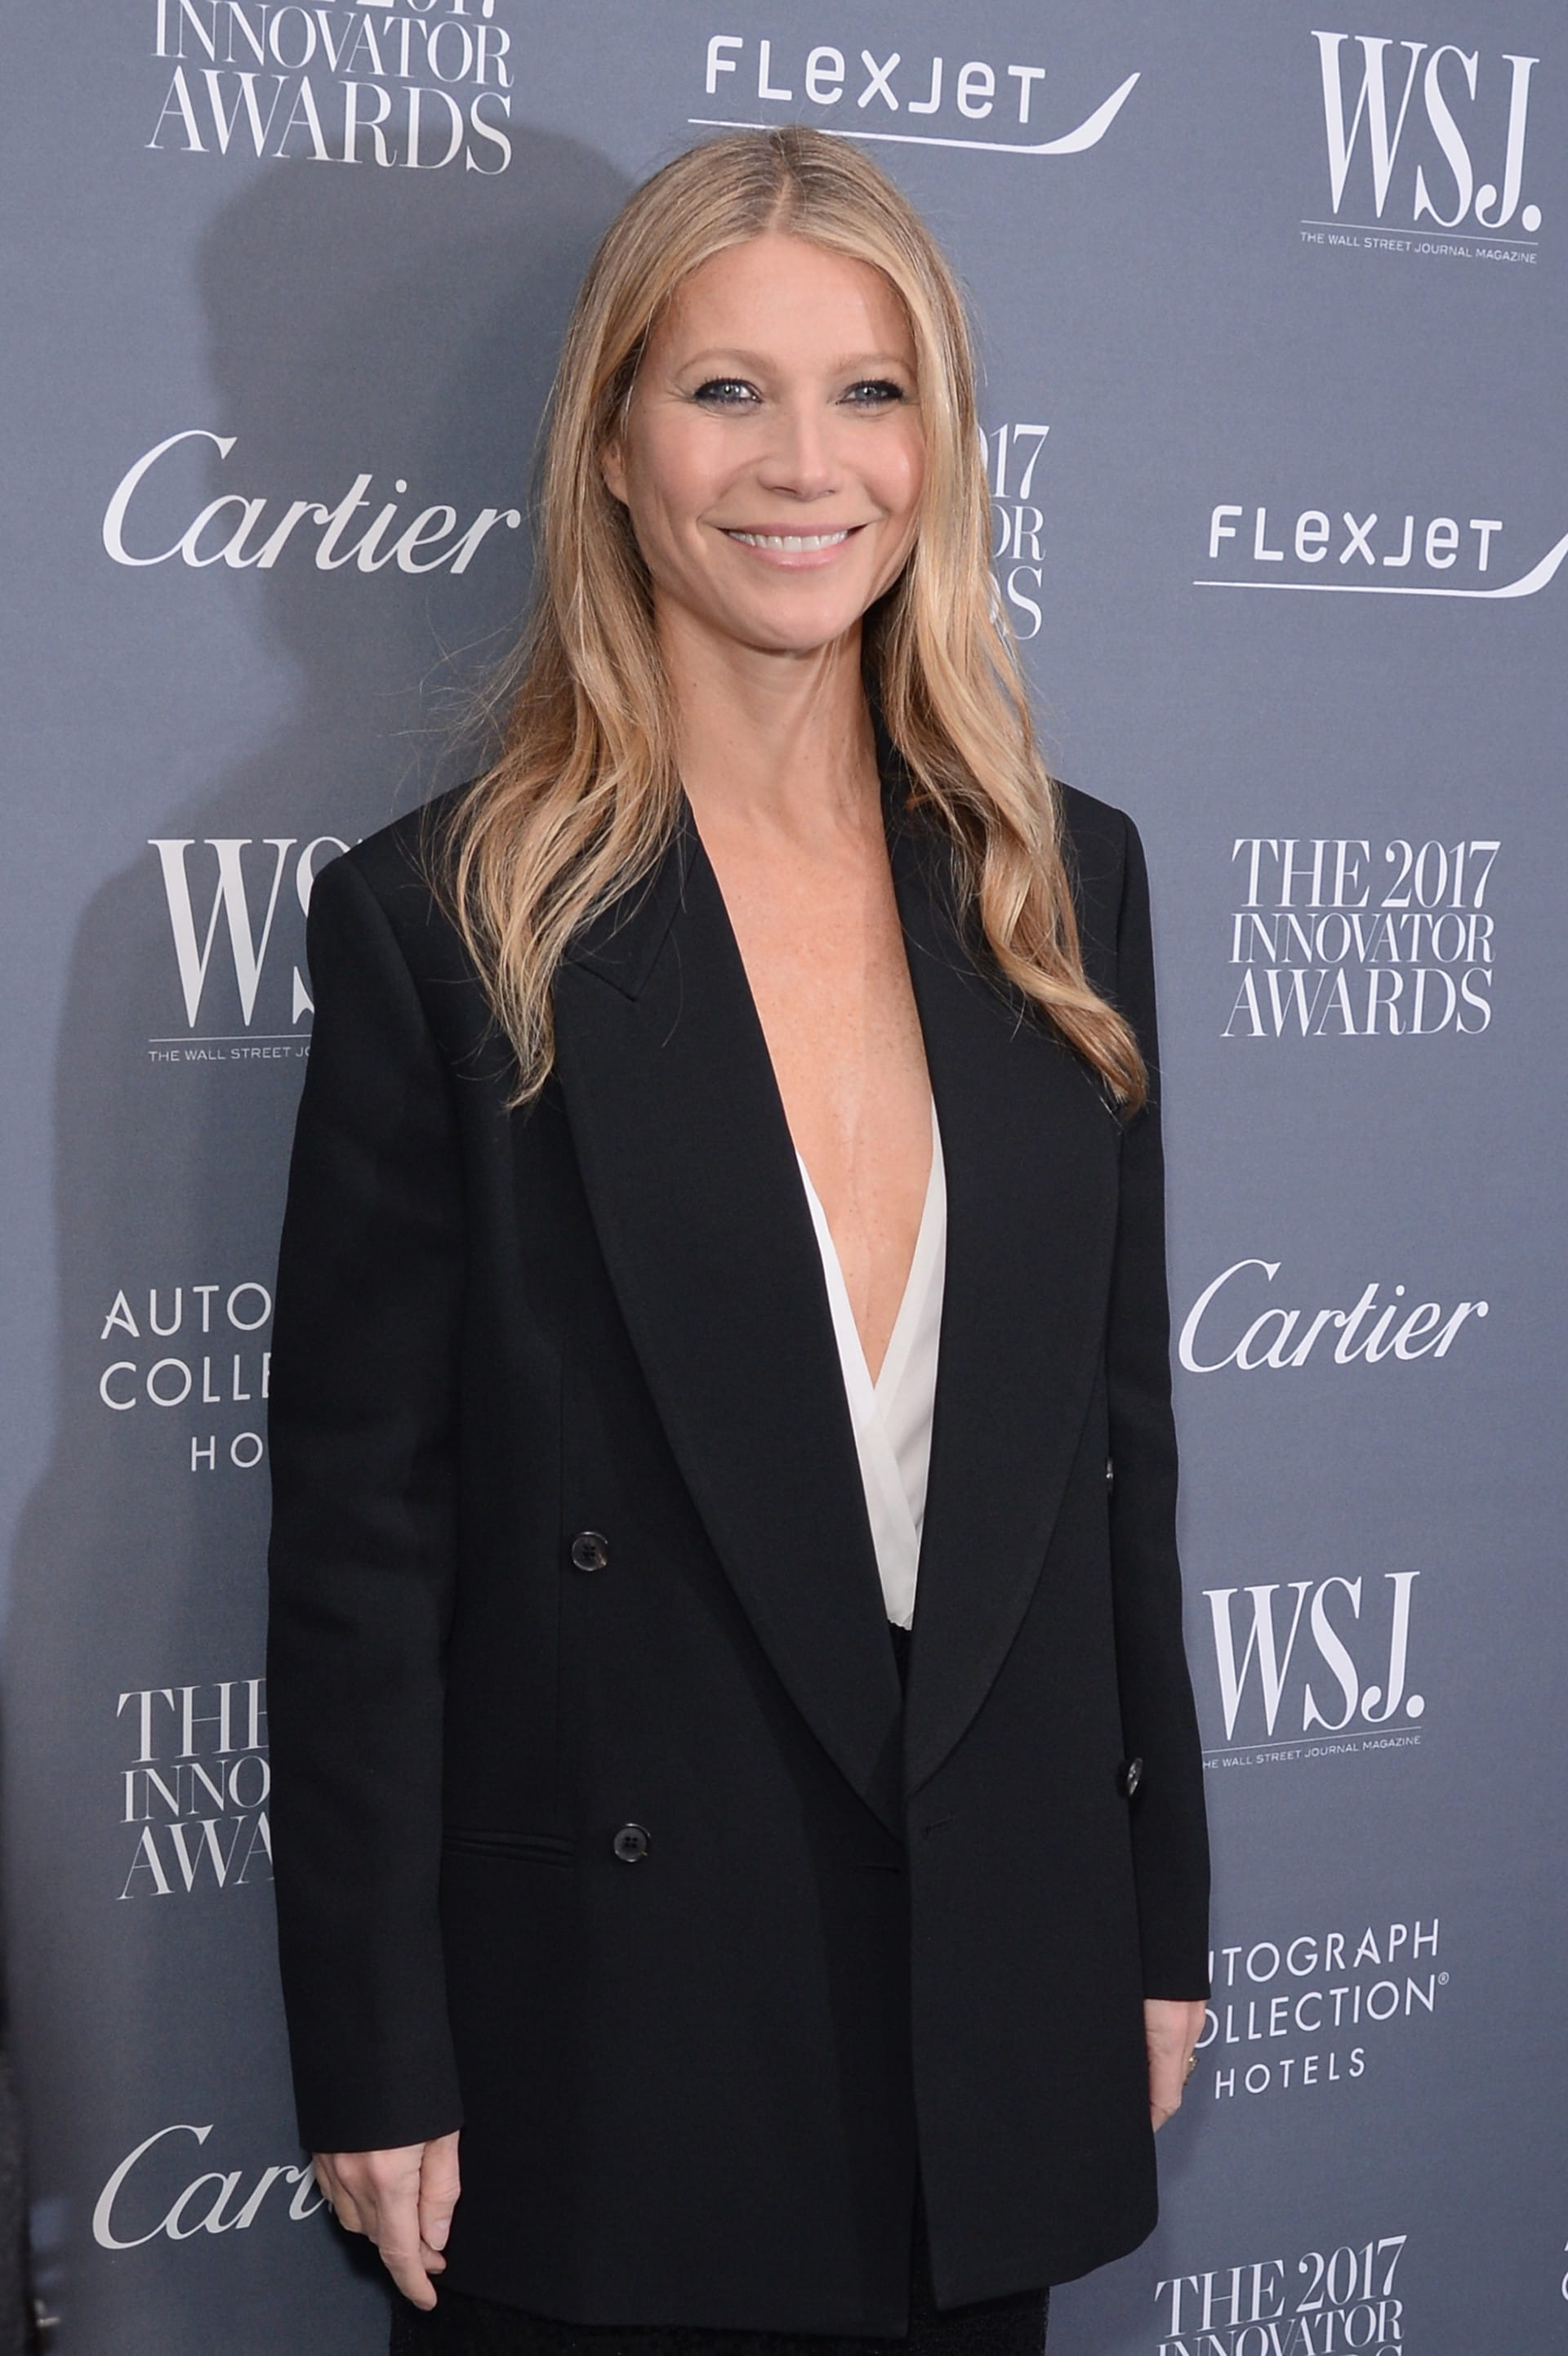 Gwyneth Paltrow says she's over buying expensive clothing